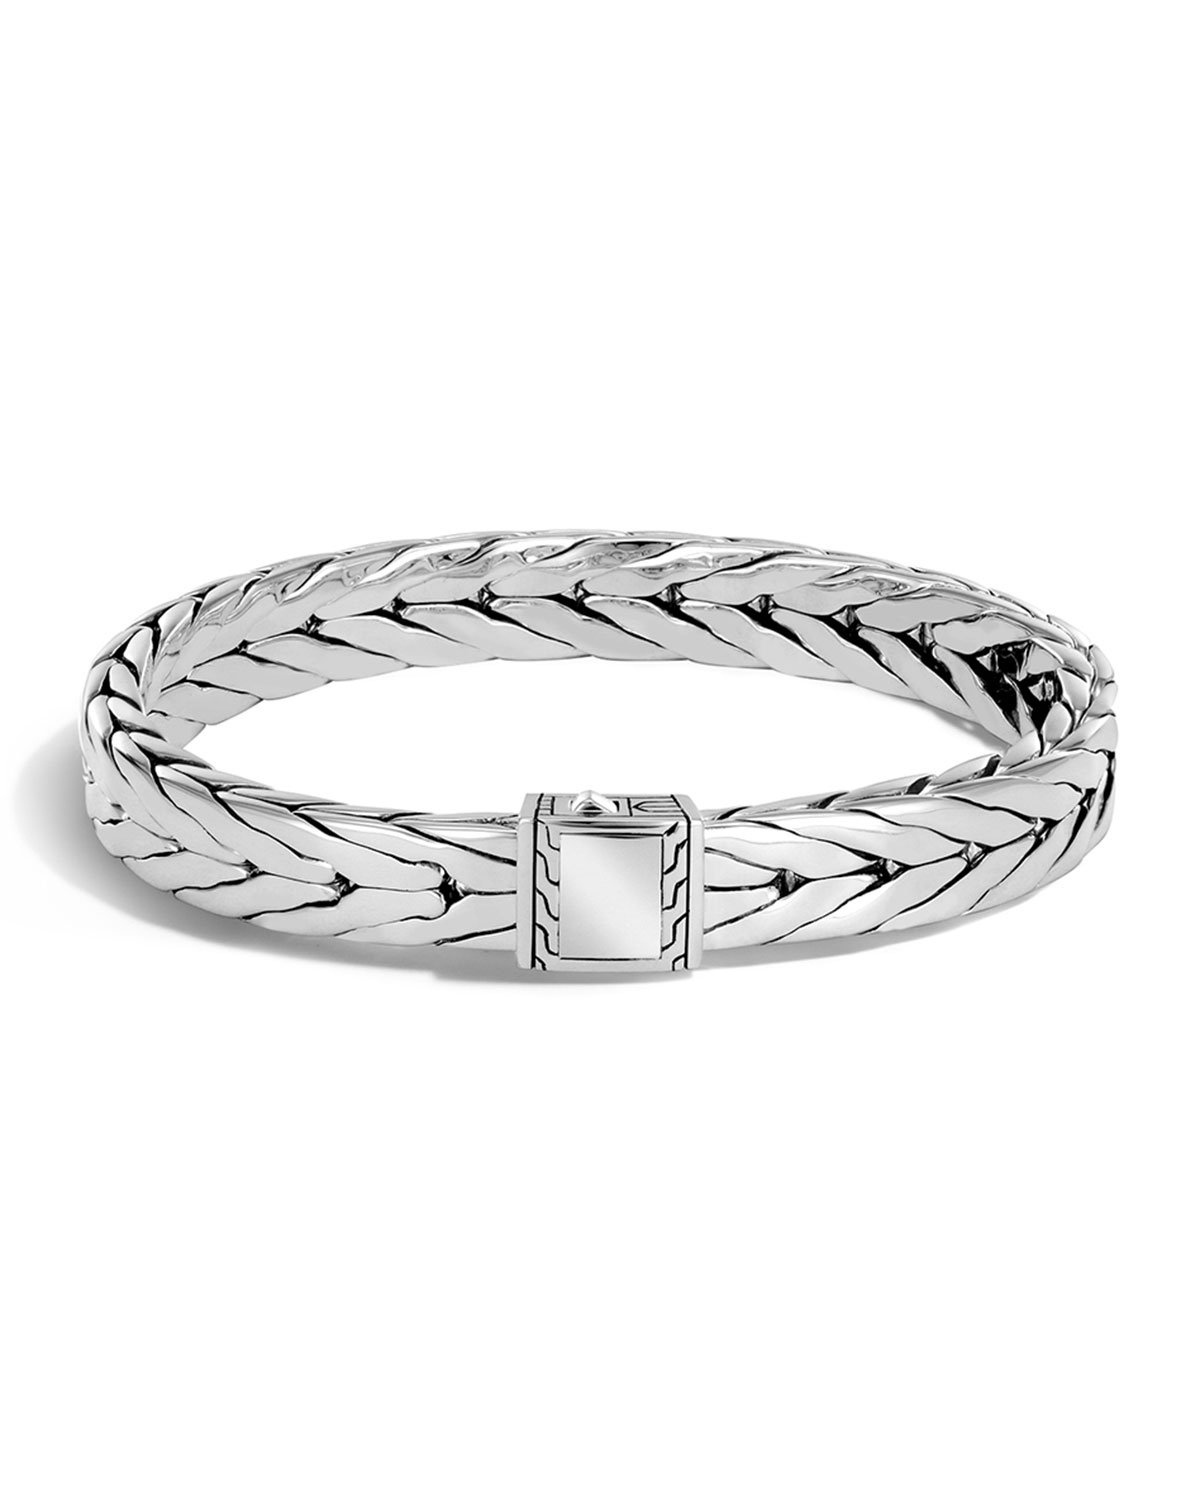 John Hardy Men's Medium Classic Chain Sterling Silver Cuff Bracelet